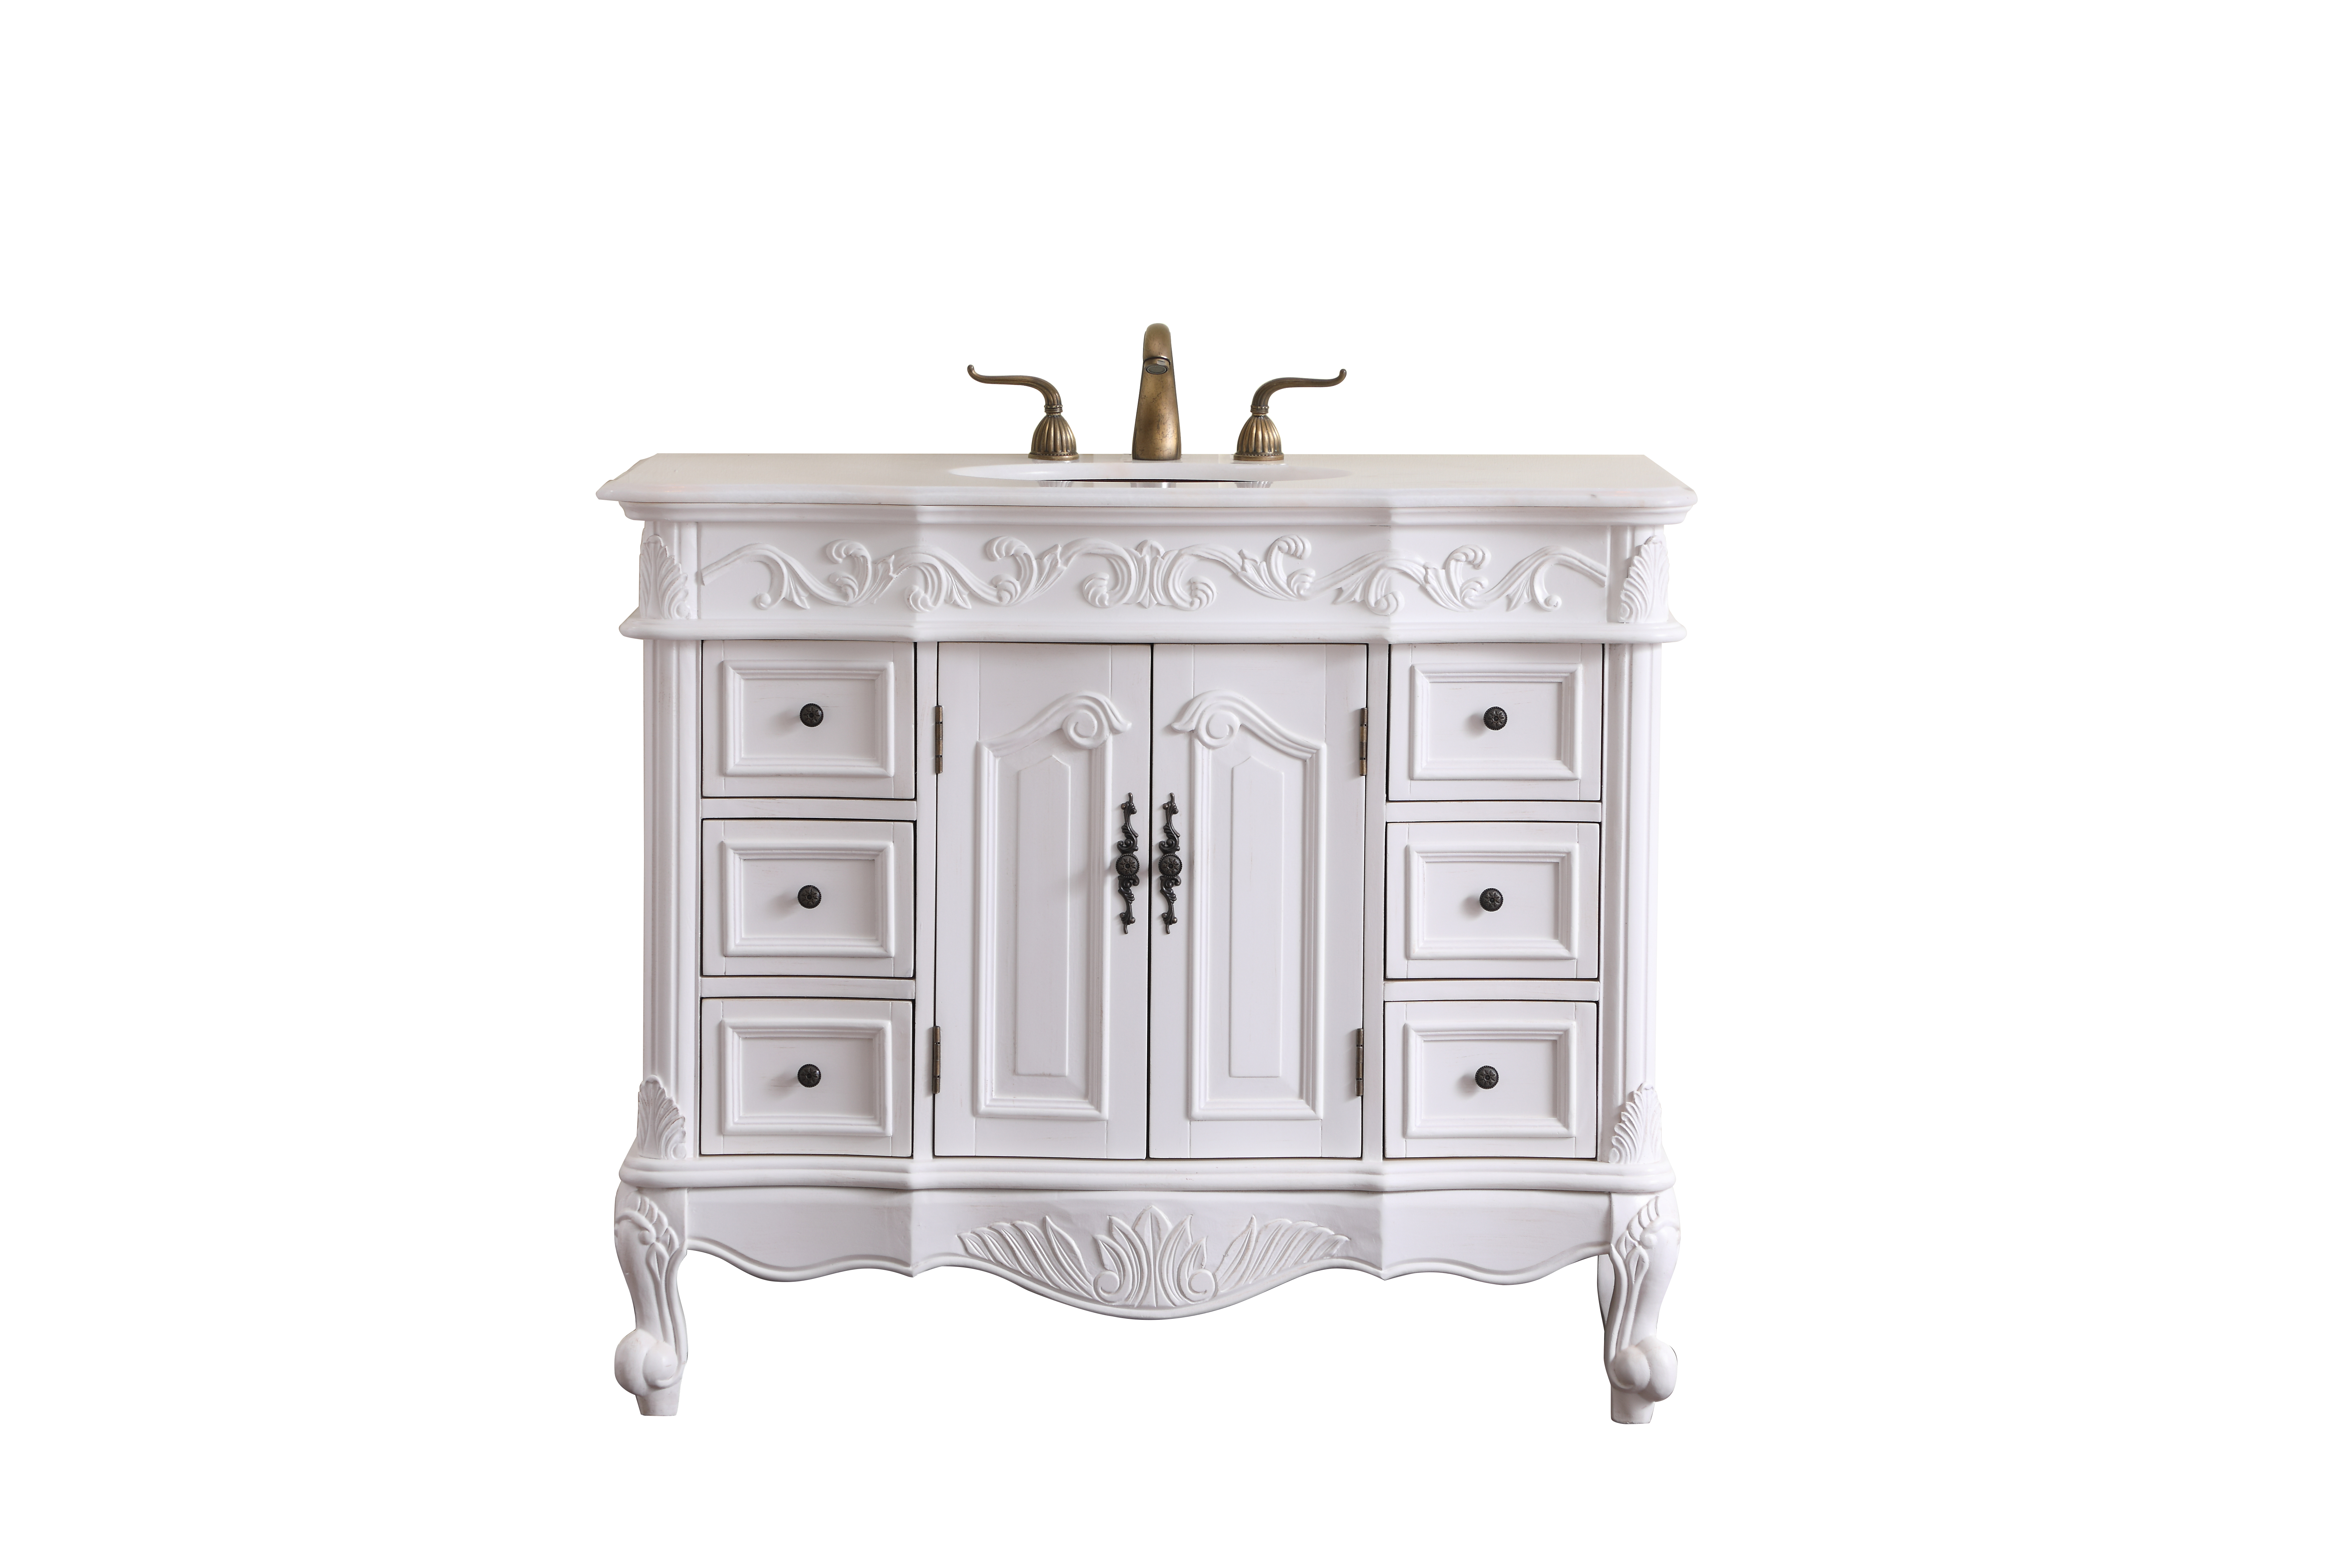 Details About 42 In Single Bathroom Vanity Set Antique White Vf38842aw